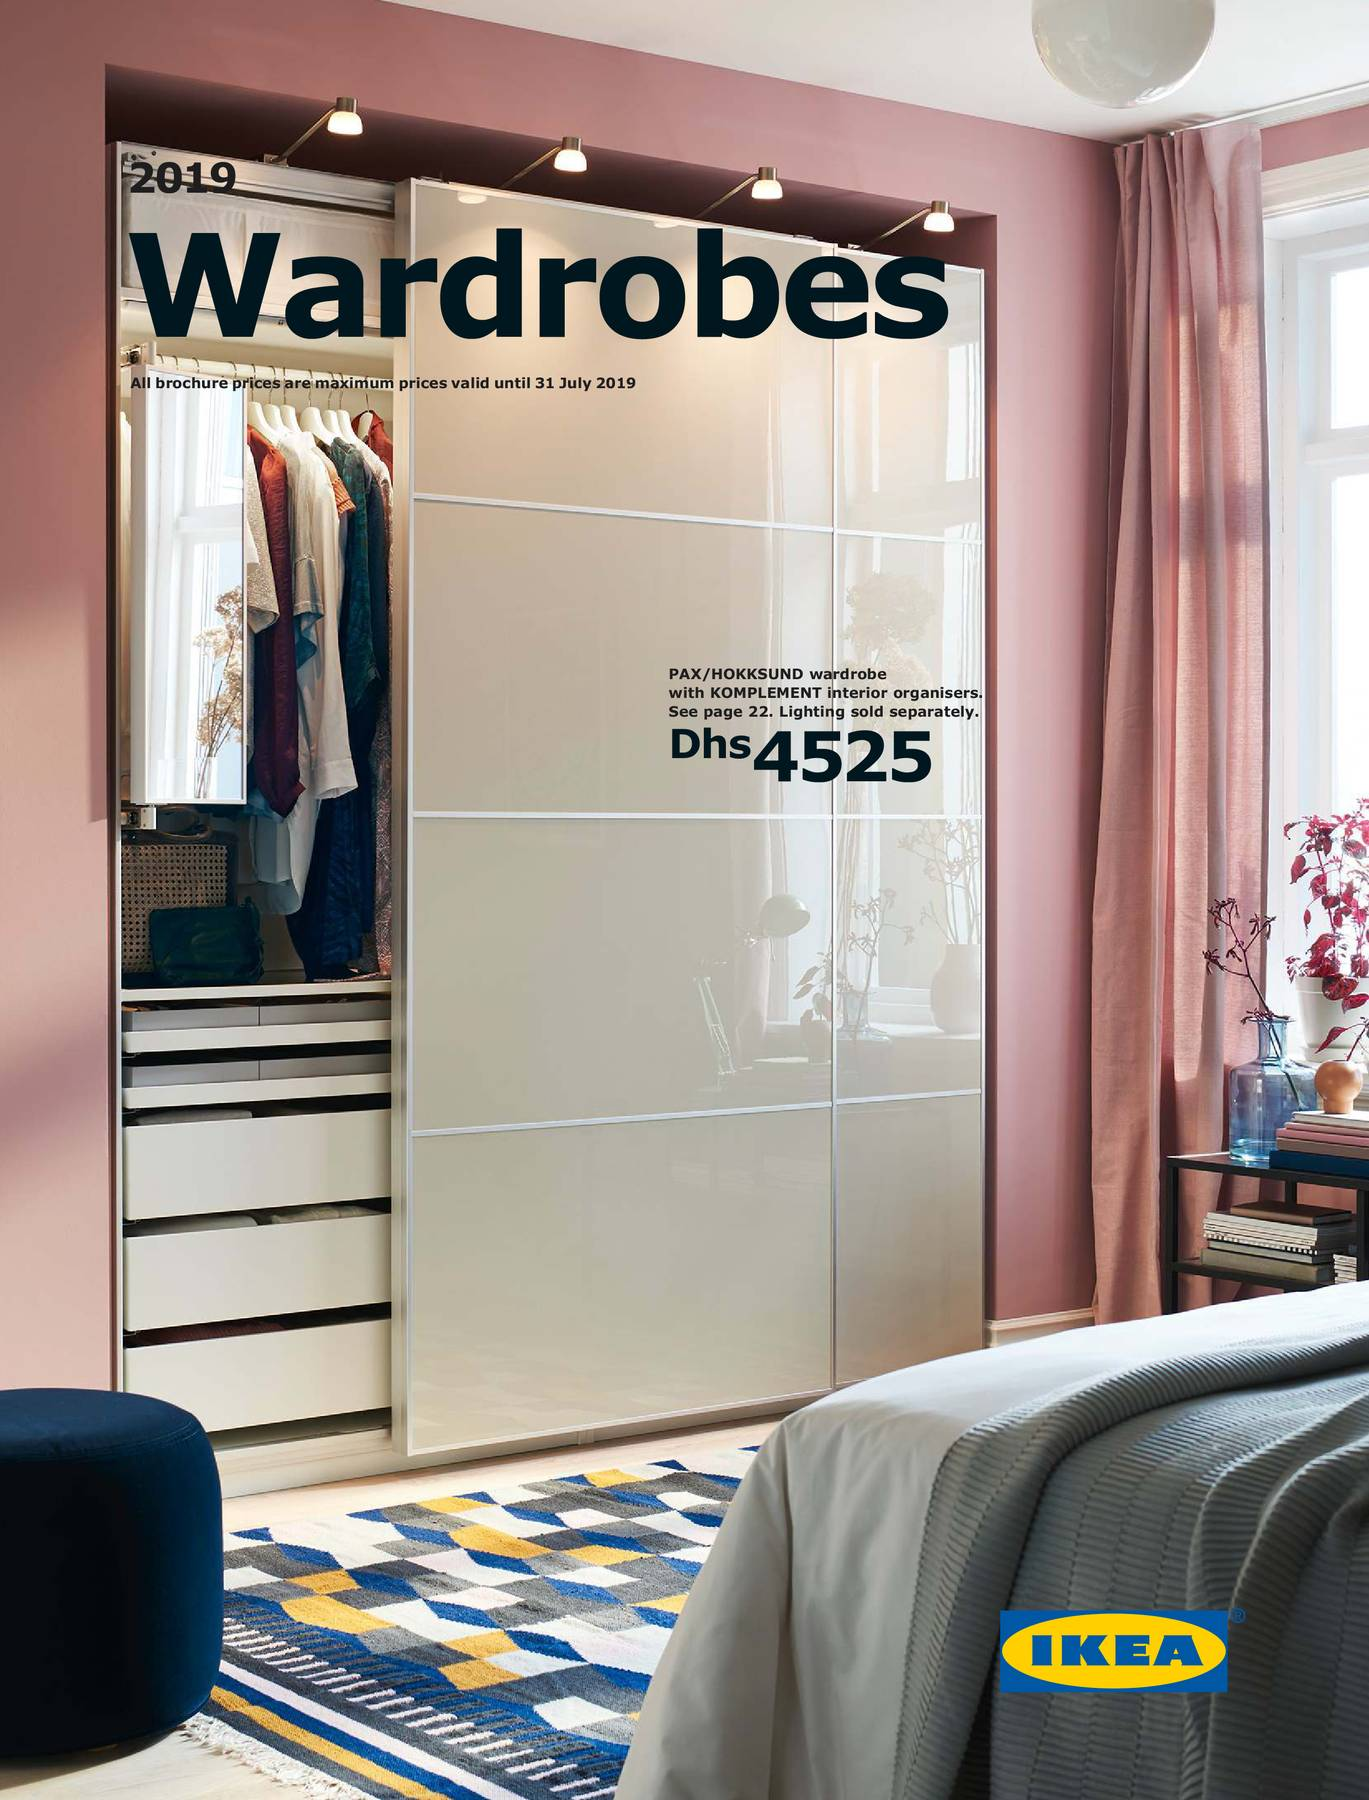 IKEA Big Wardrobes Offers from IKEA until 10st August - IKEA Offers